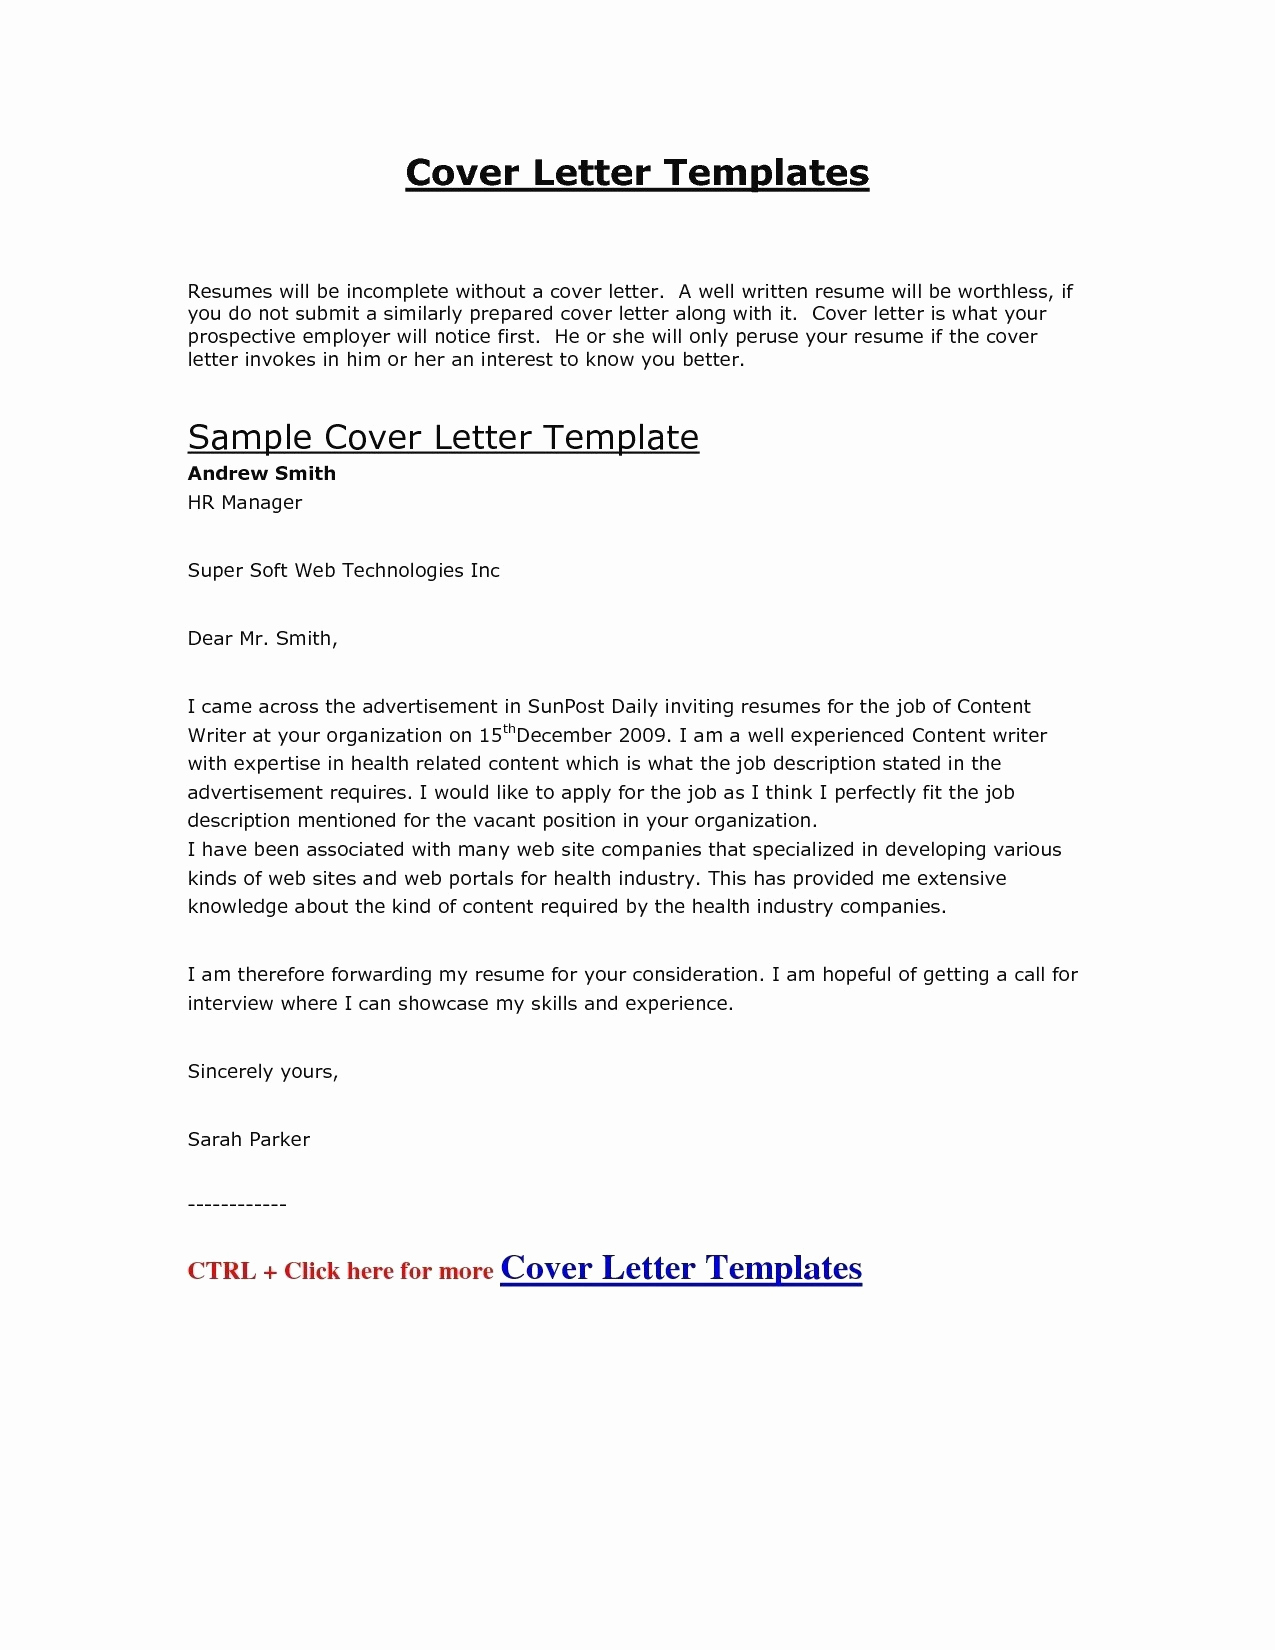 Resume Template Examples - Resume with Covering Letter Cover Letter Resume Template Luxury